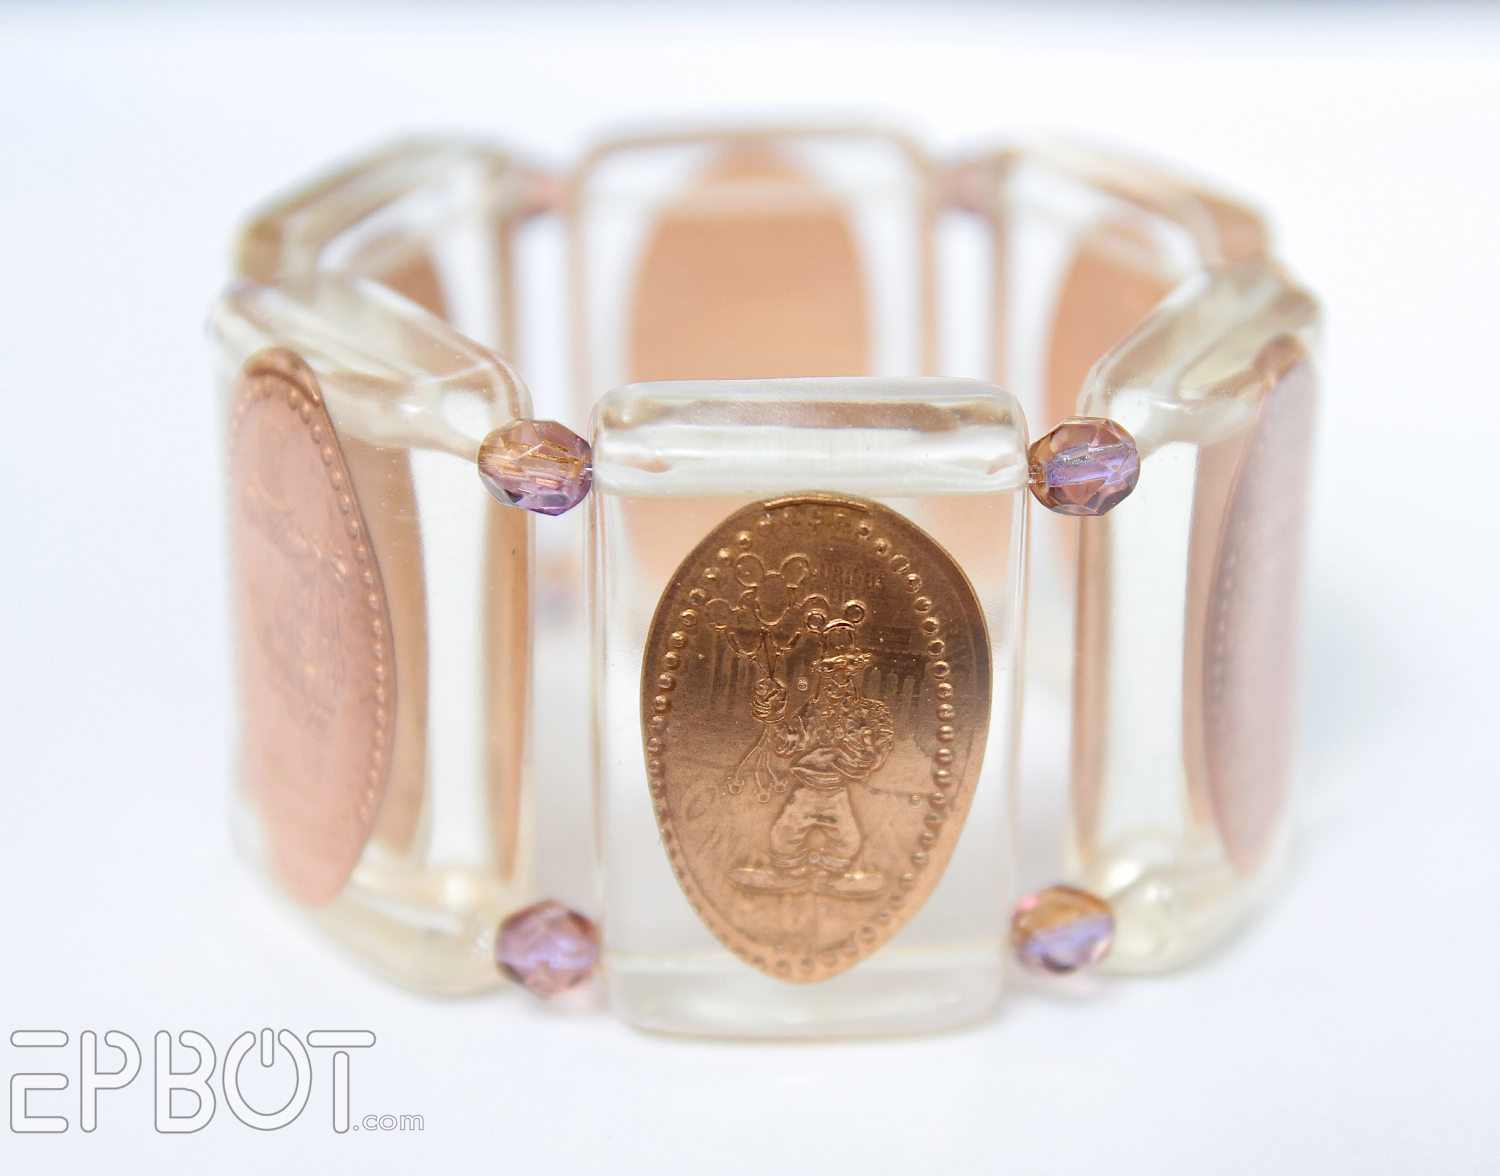 Epbot Smashed Penny Bracelet In Resin